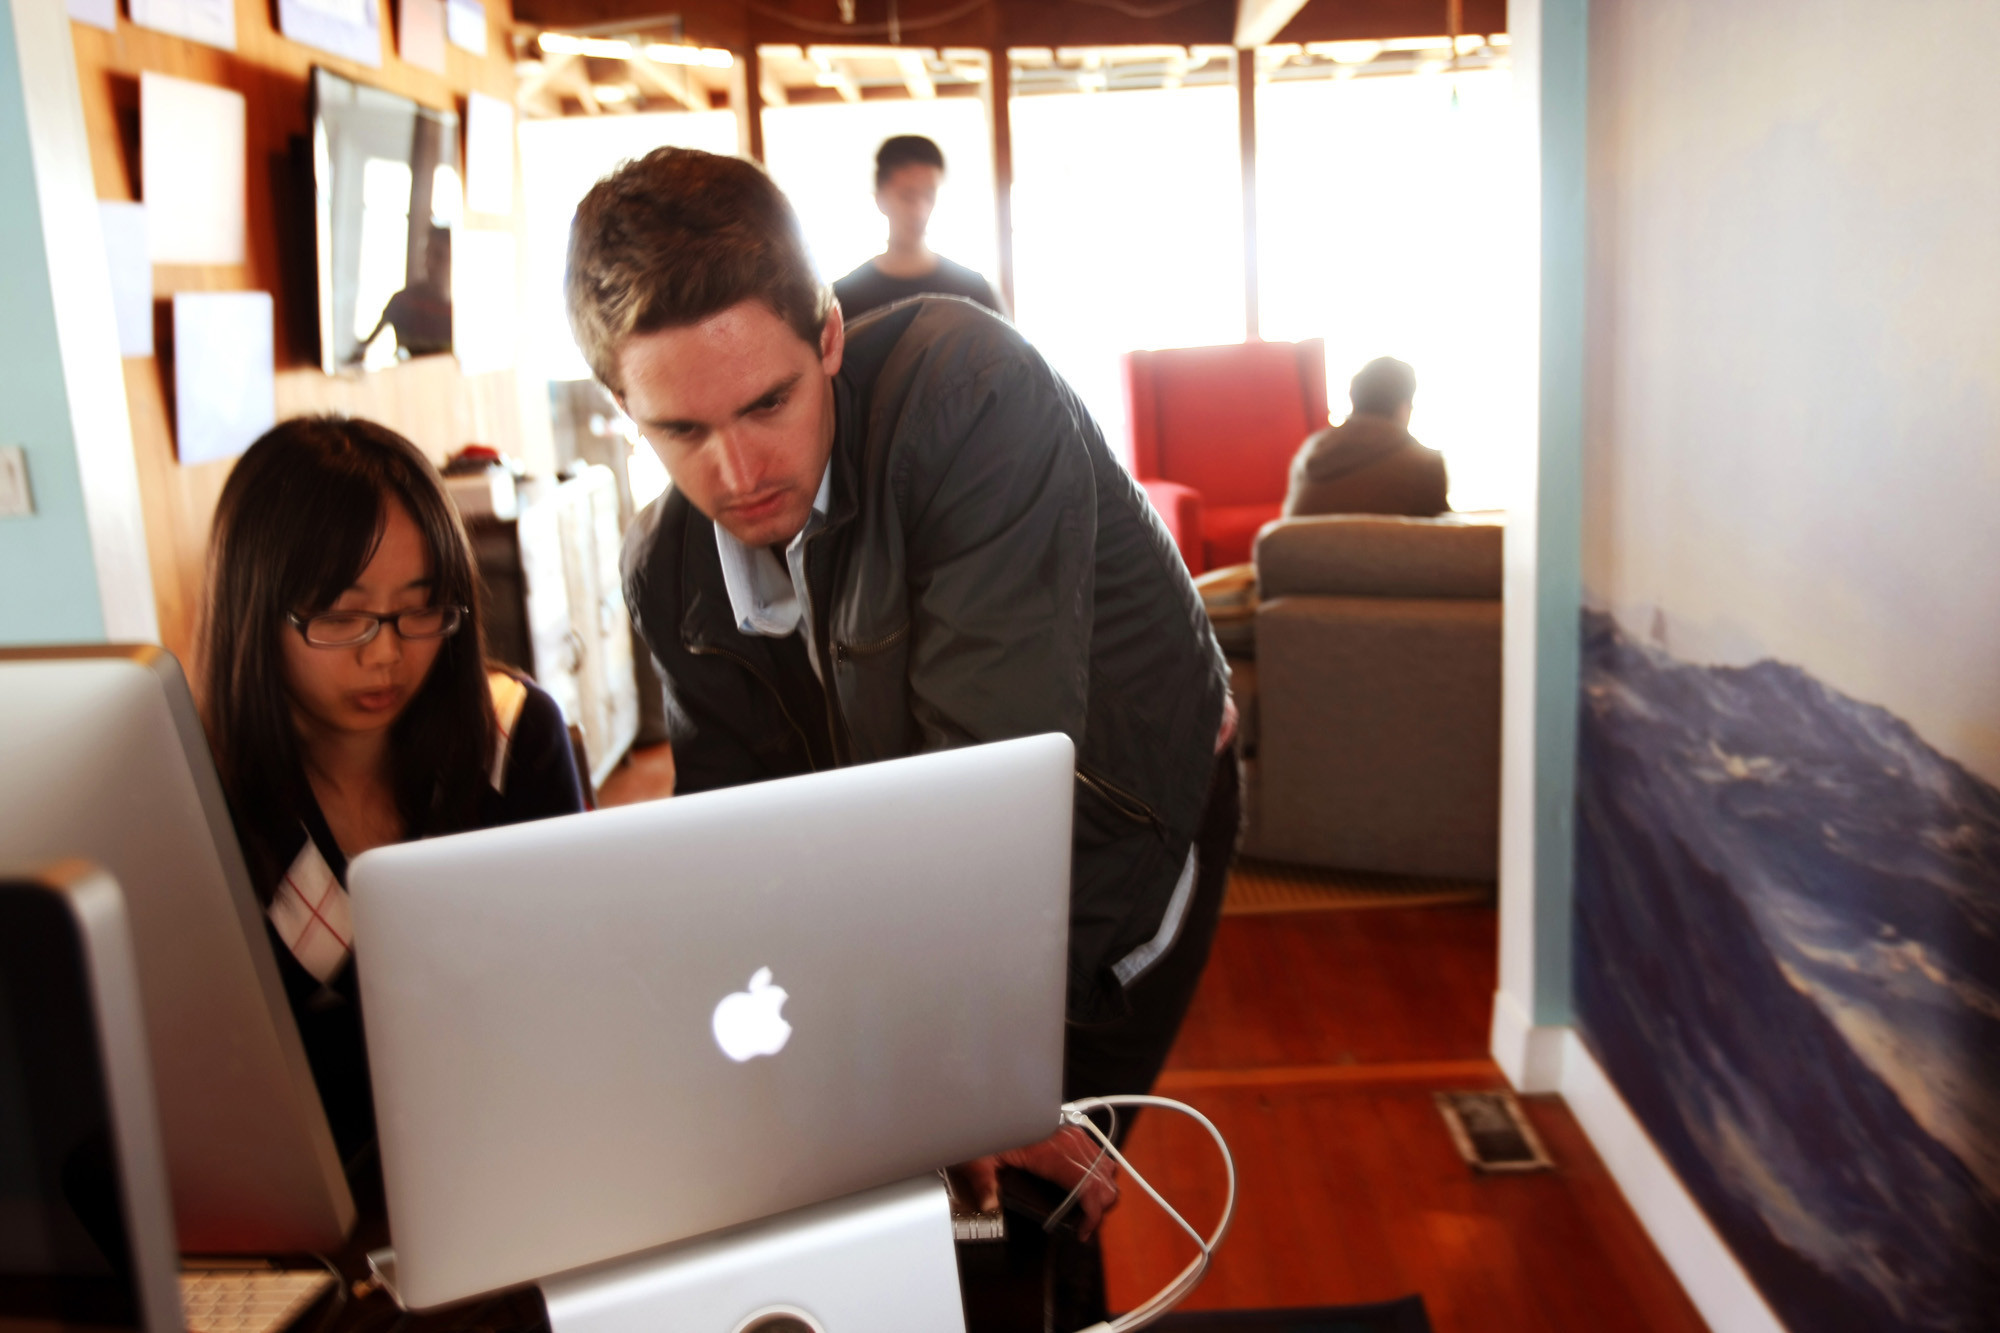 Evan Spiegel works with Chia-Yi Lin at Snap's offices in Venice in 2013.